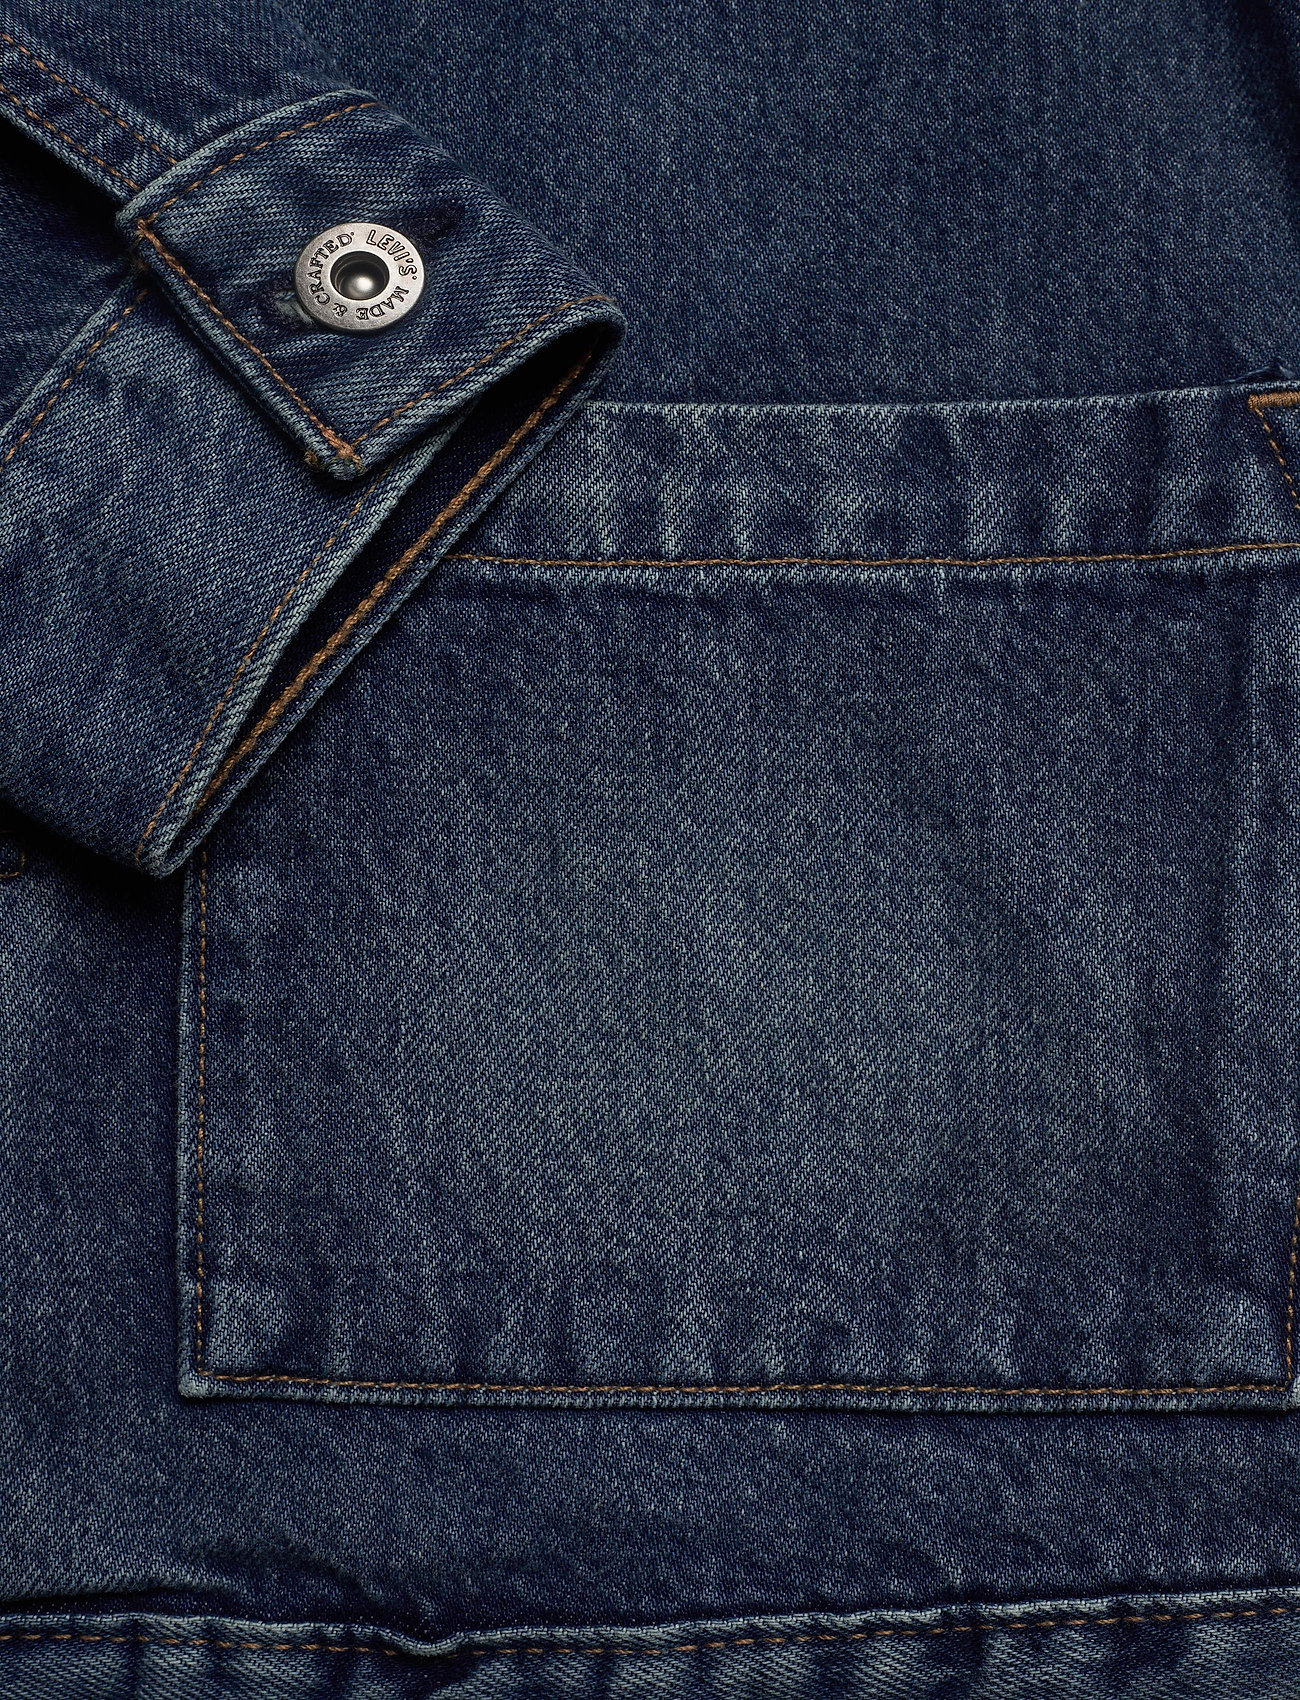 Levi's Made & Crafted LMC TYPE II WORN TRUCKER LMC Y - Jakker og frakker MED INDIGO - WORN IN - Menn Klær